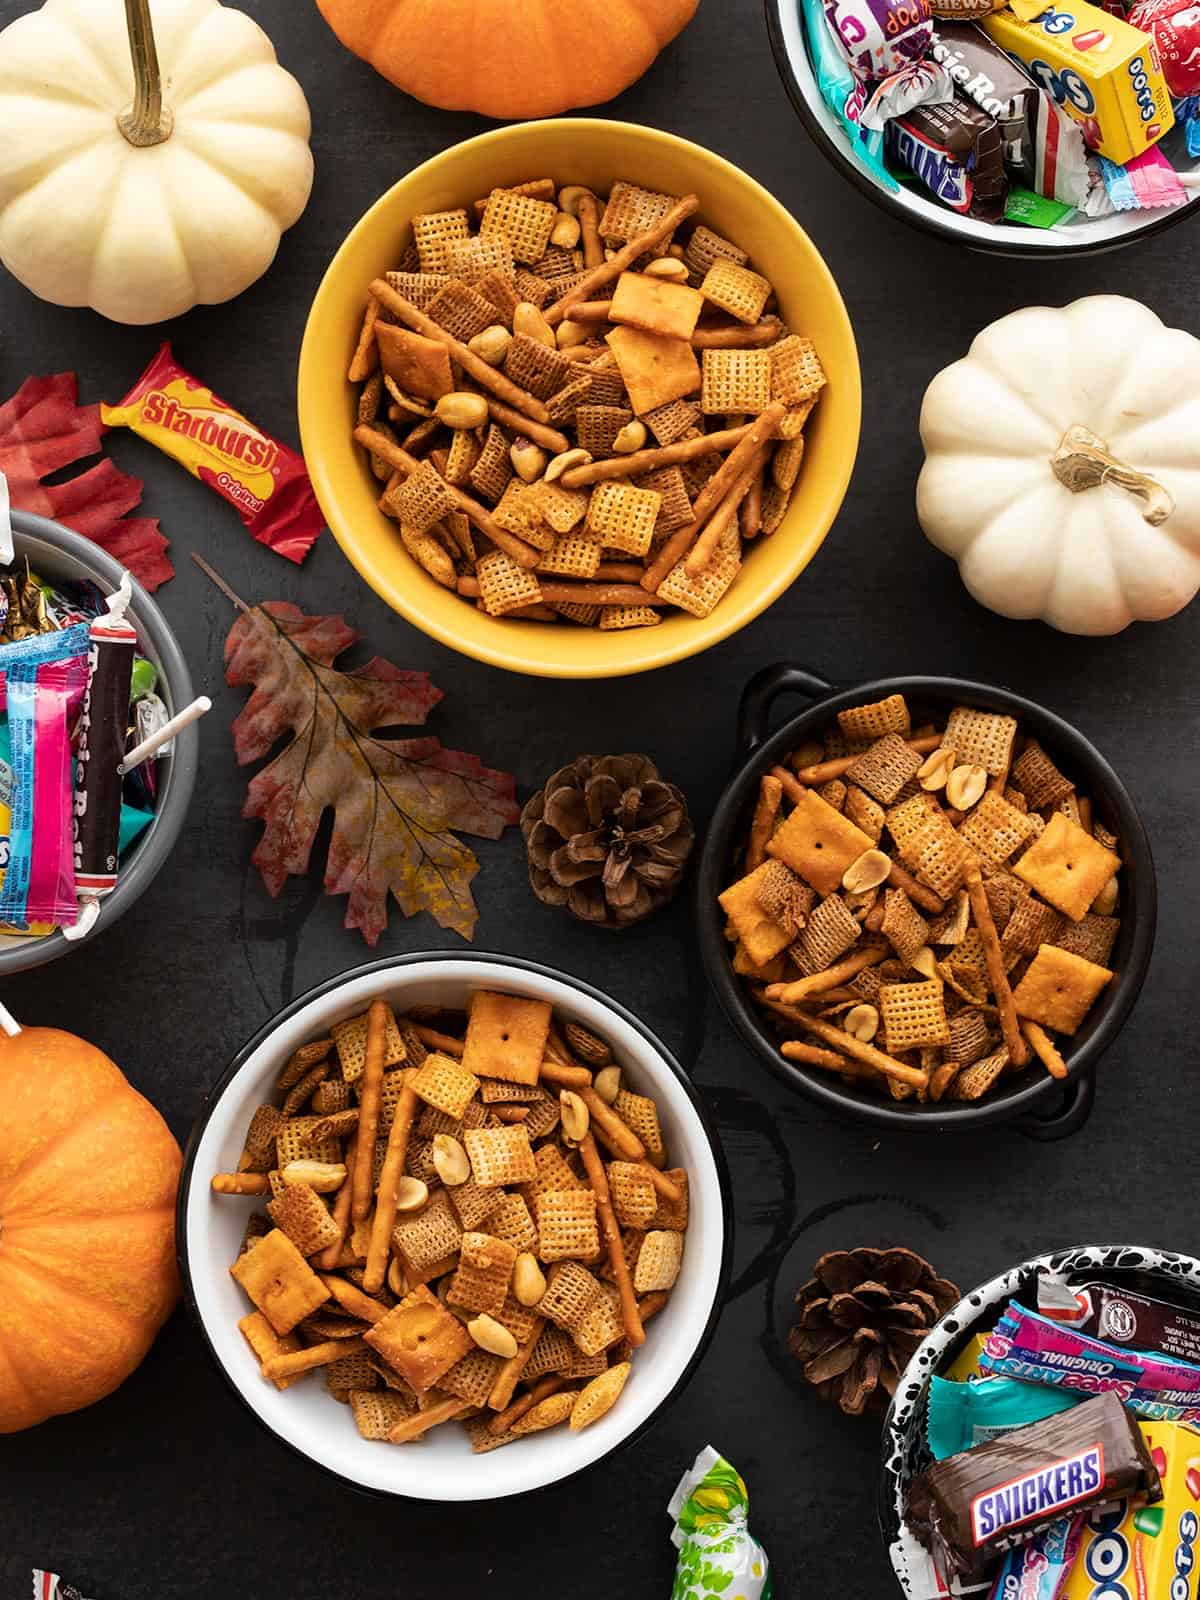 Three bowls of chex mix next to bowls of candy and pumpkins